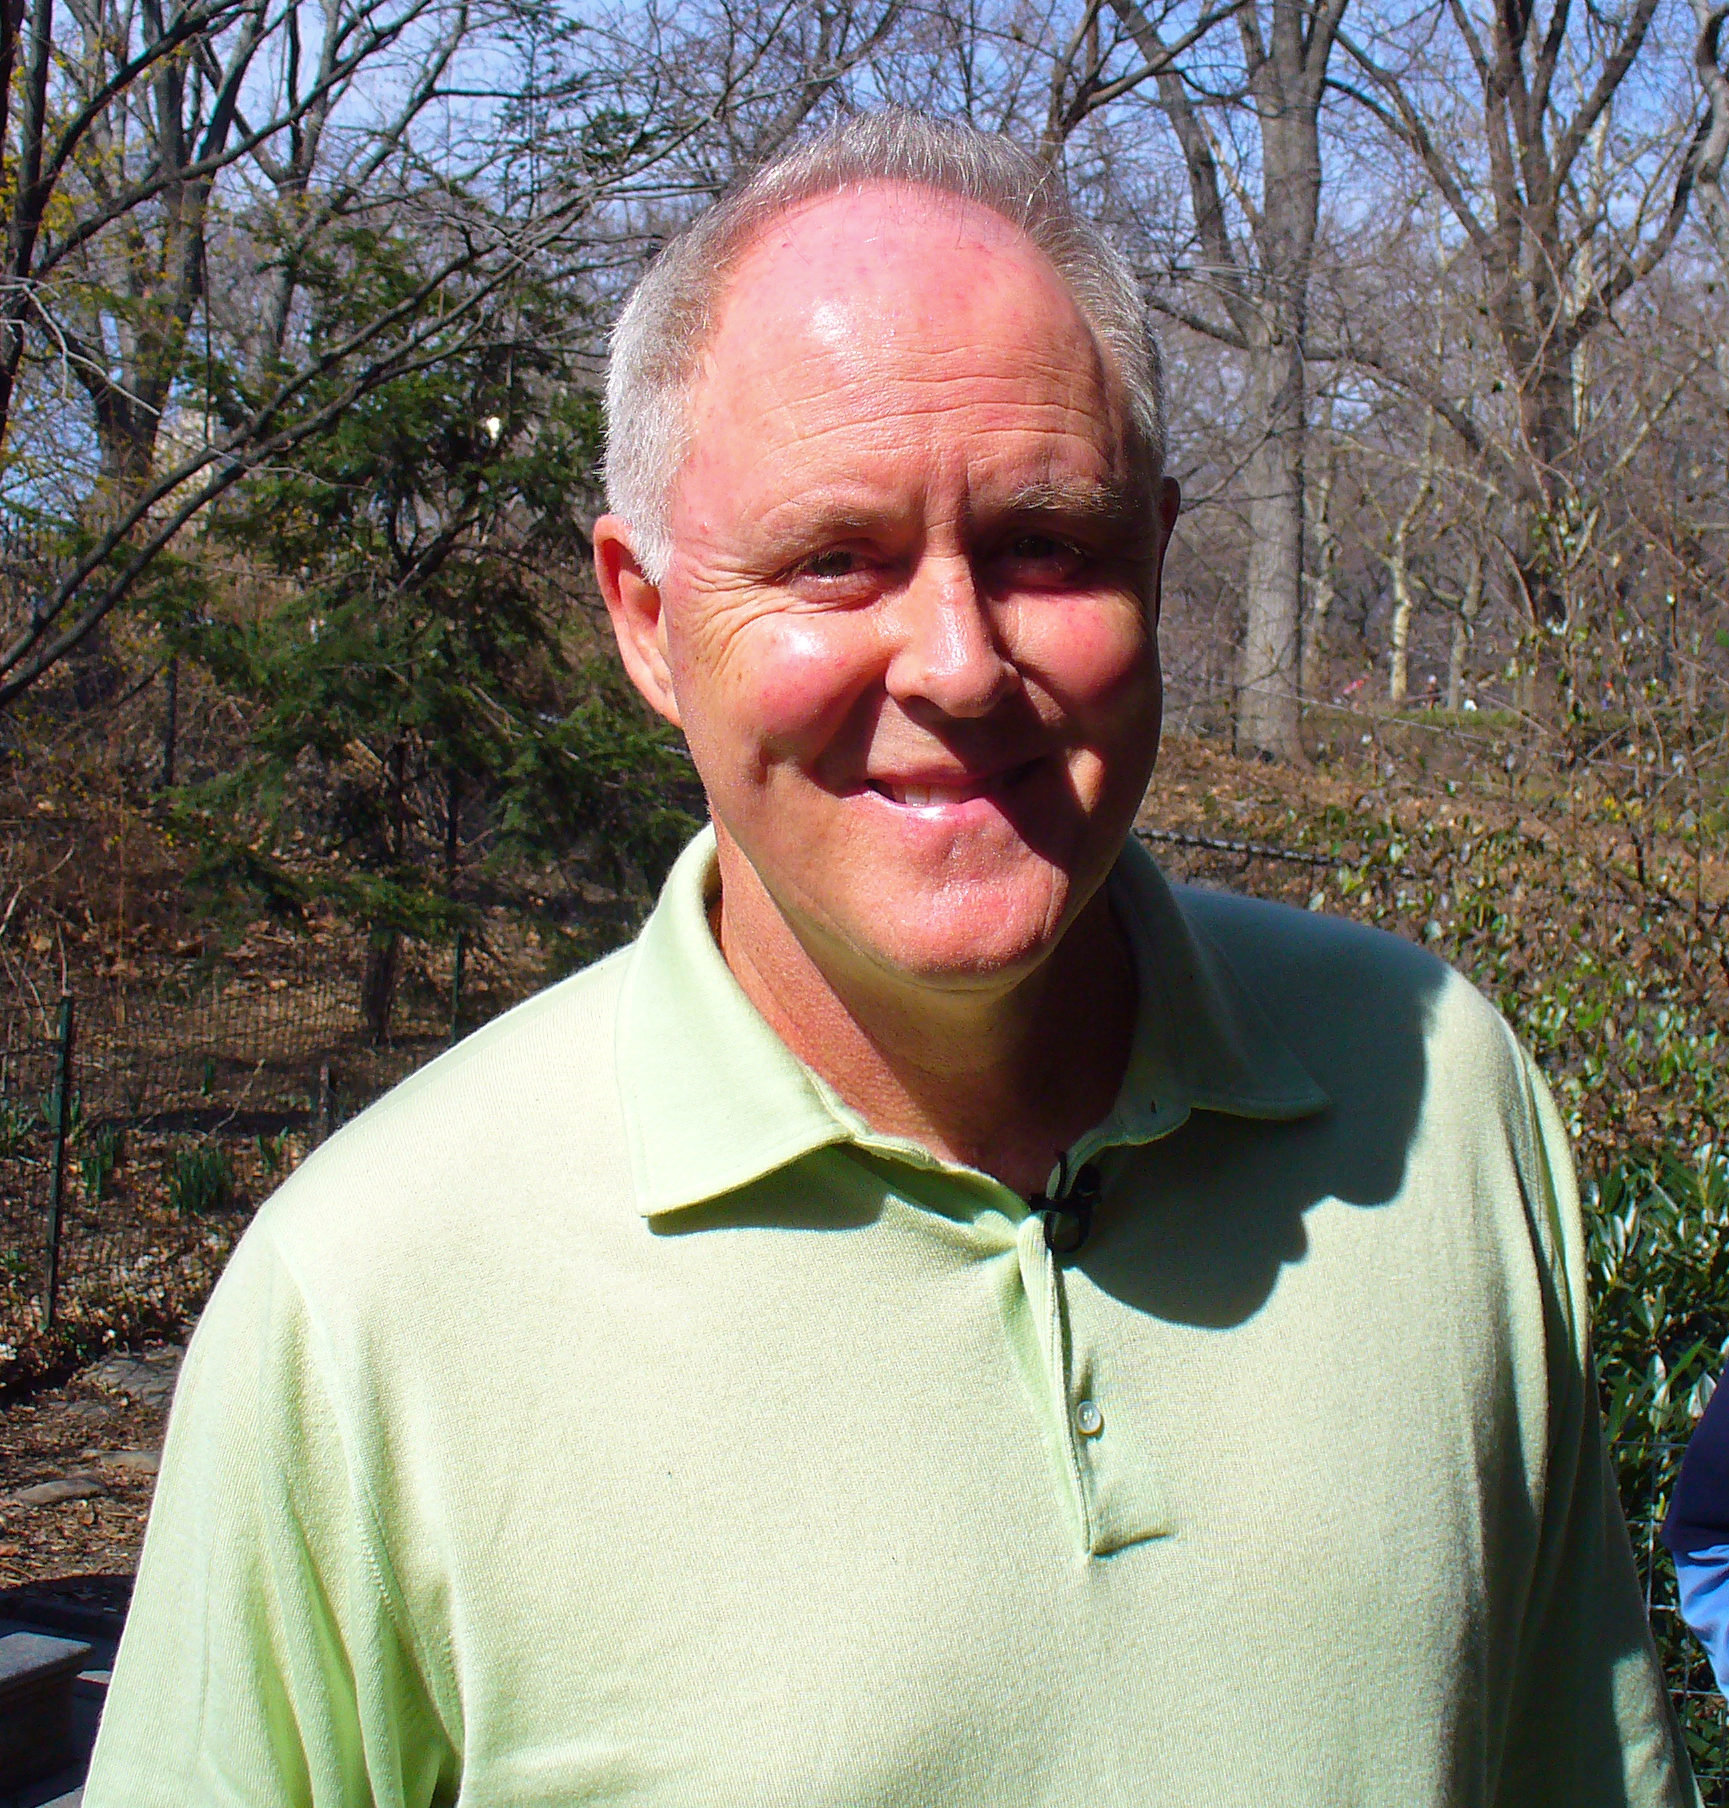 Depiction of John Lithgow